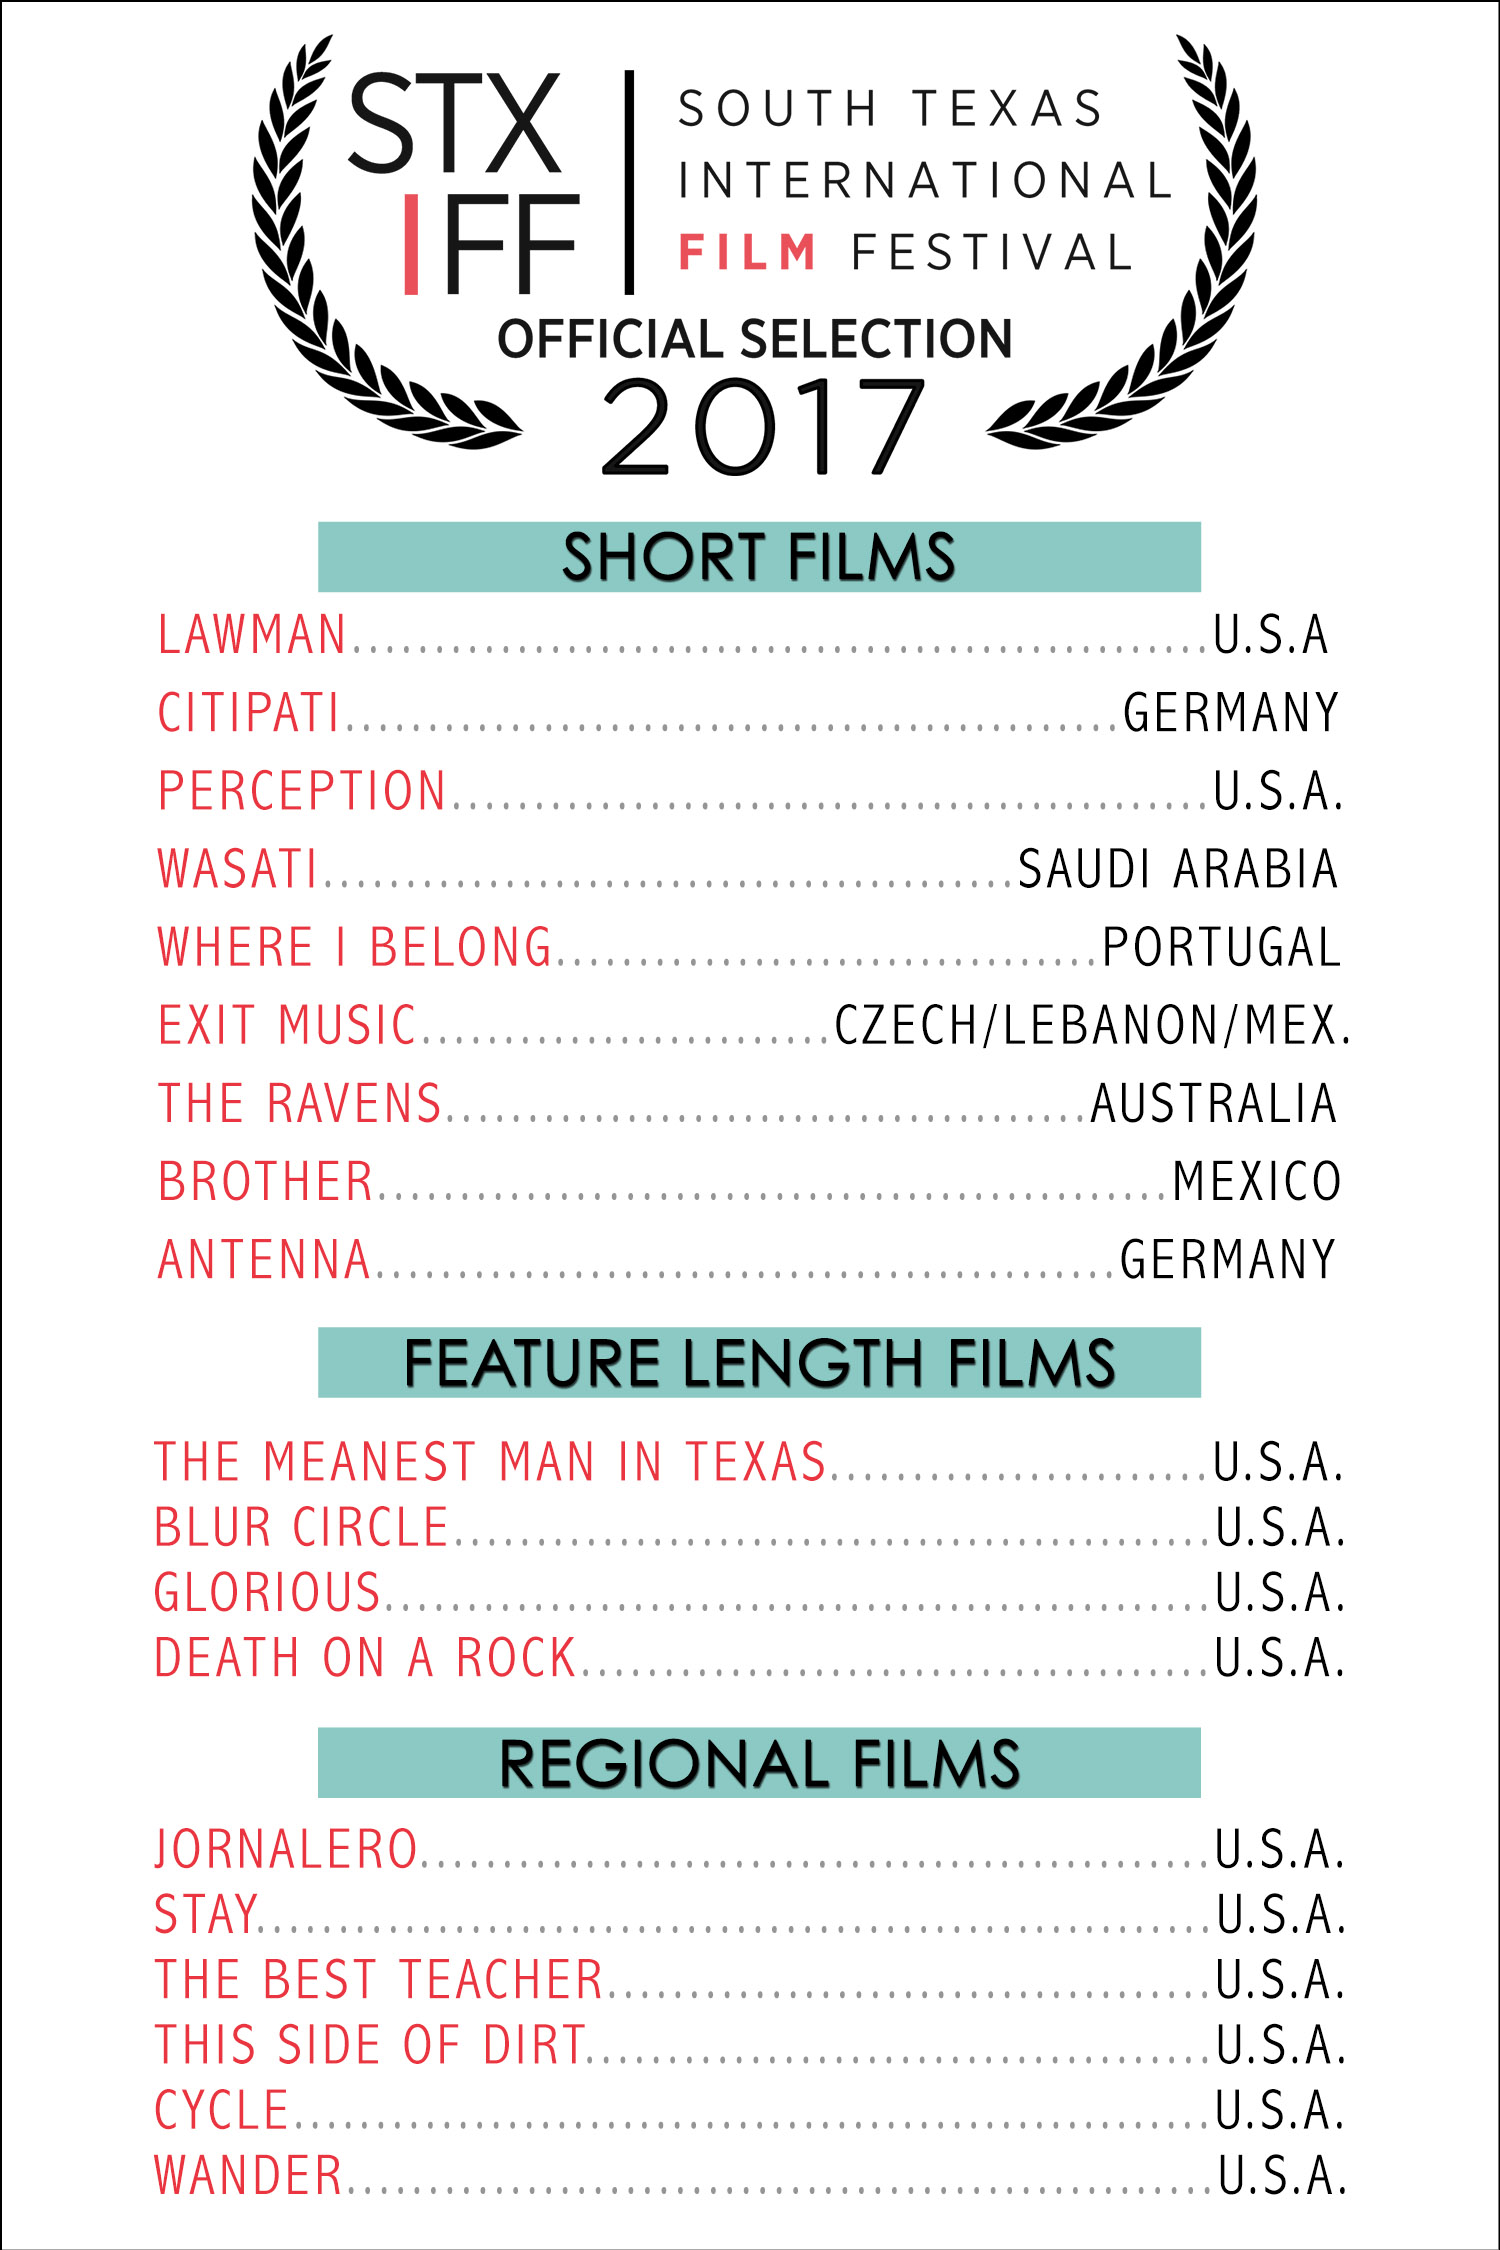 South Texas International Film Festival Official Selections 2017